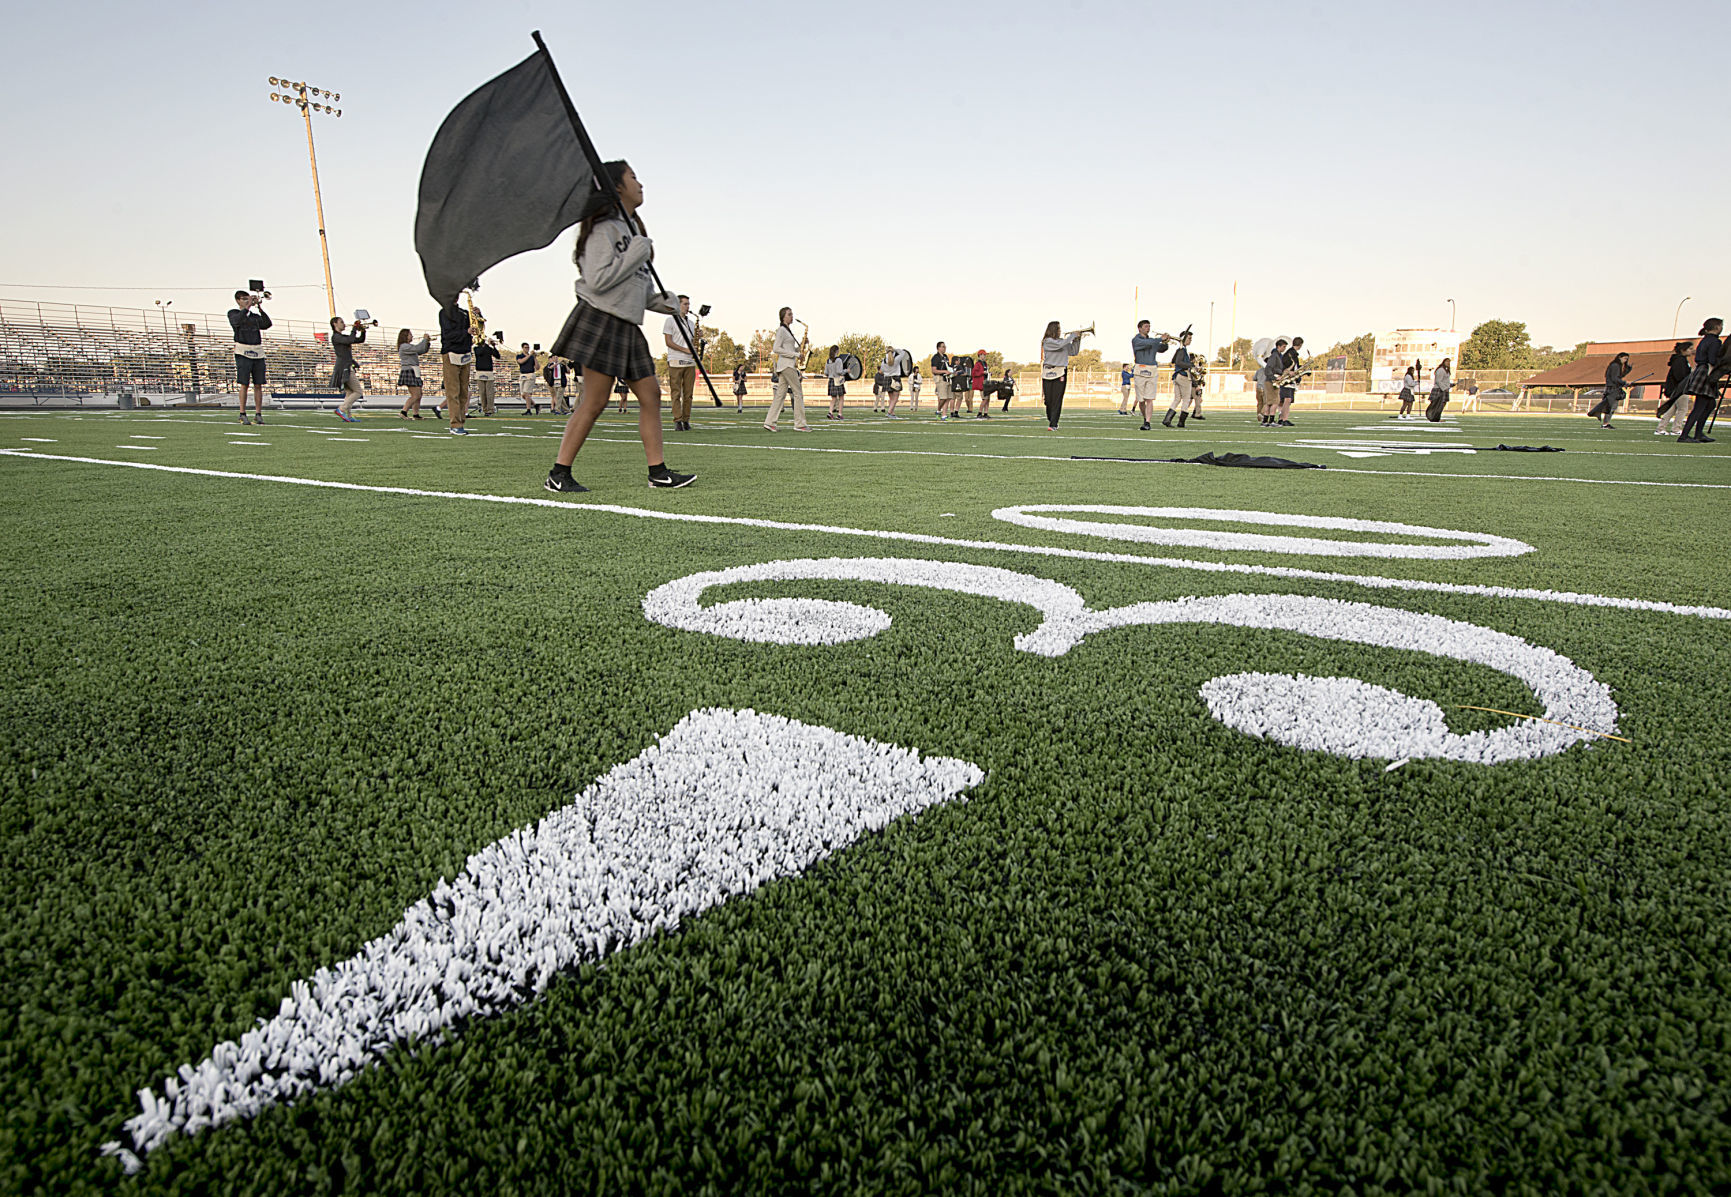 artificial football turf. Increasing Number Of Schools Choosing Turf Over Grass   Education Siouxcityjournal.com Artificial Football